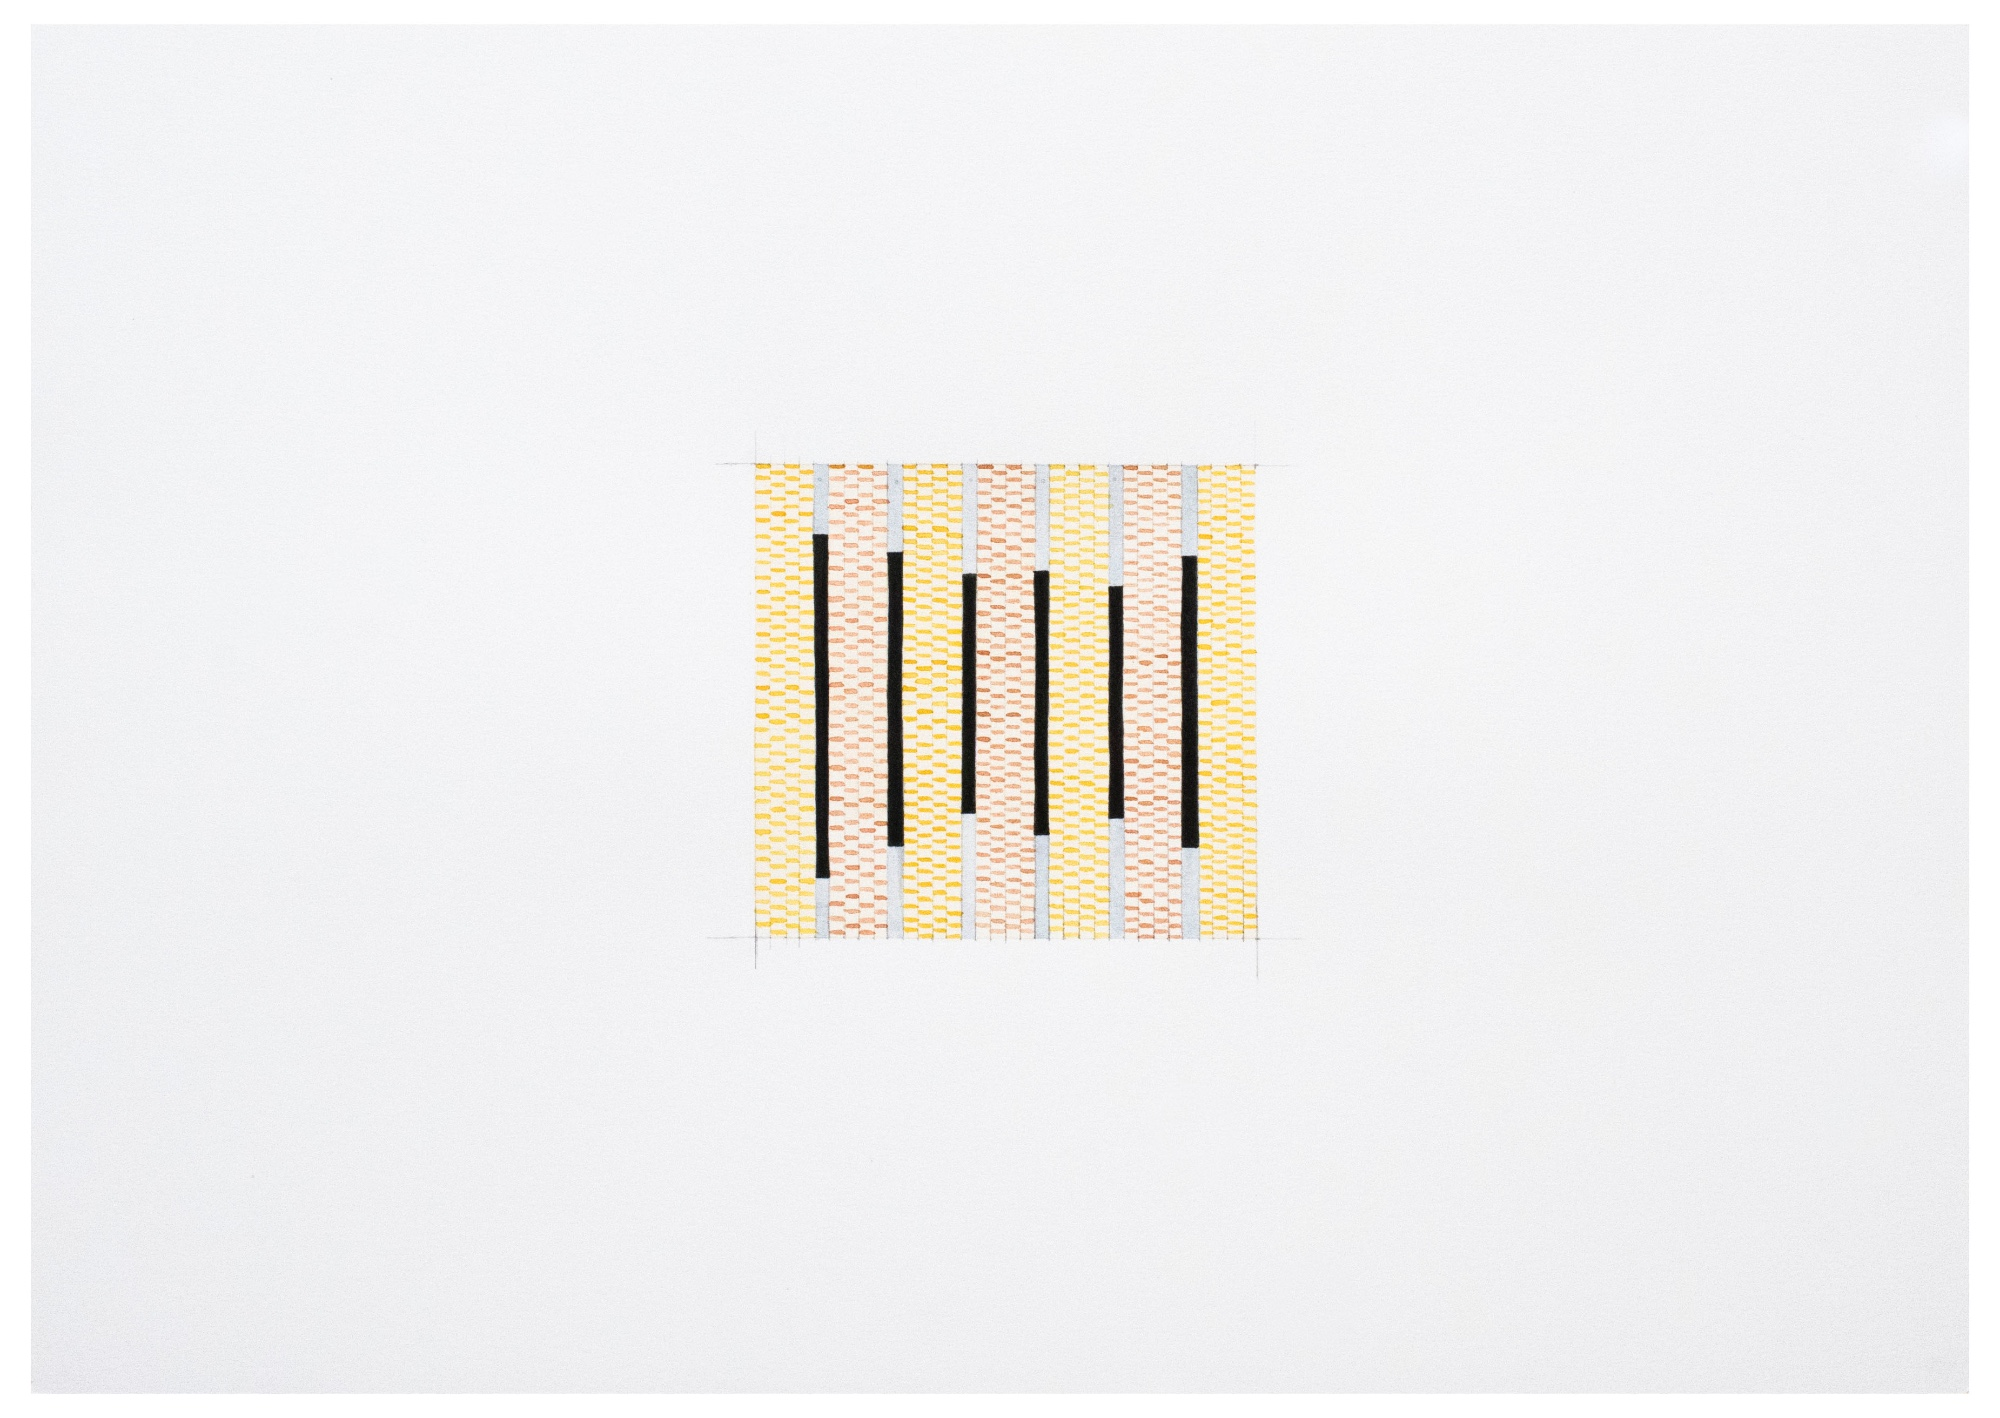 The playful, staccato rhythms of the drawings hold the capacity for stillness and contemplation